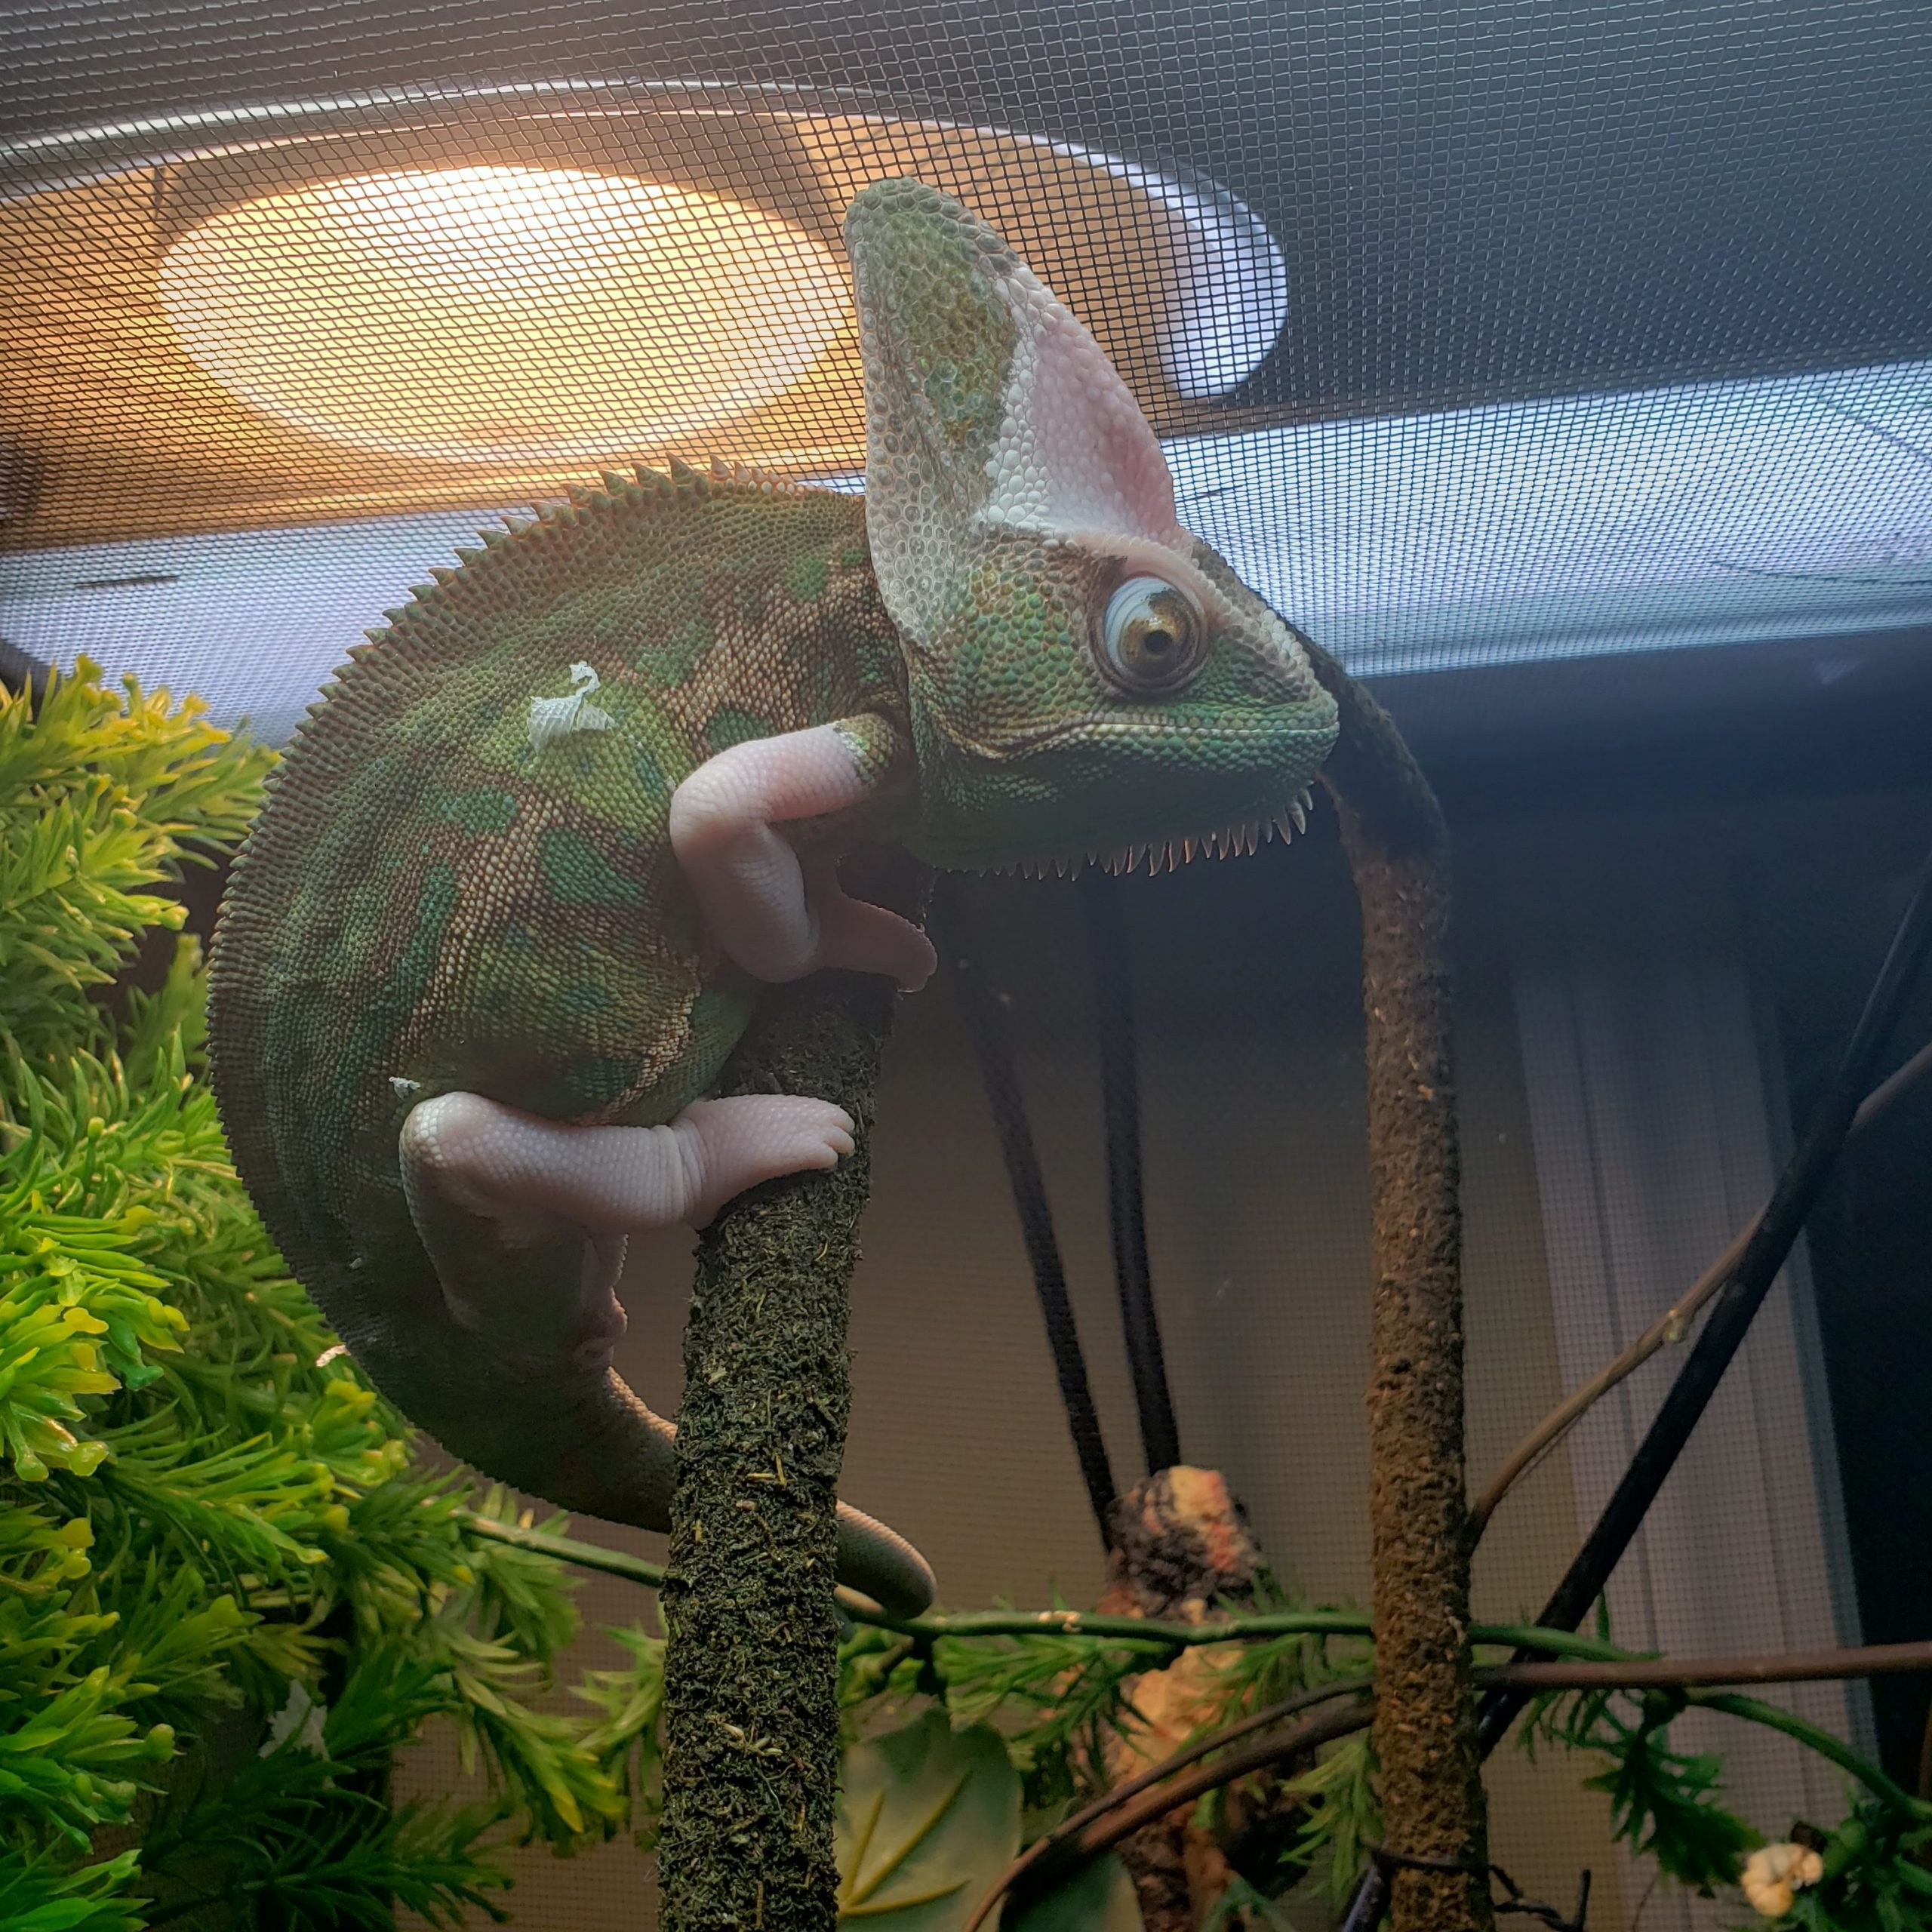 a chameleon on a branch in a cage under a heat light